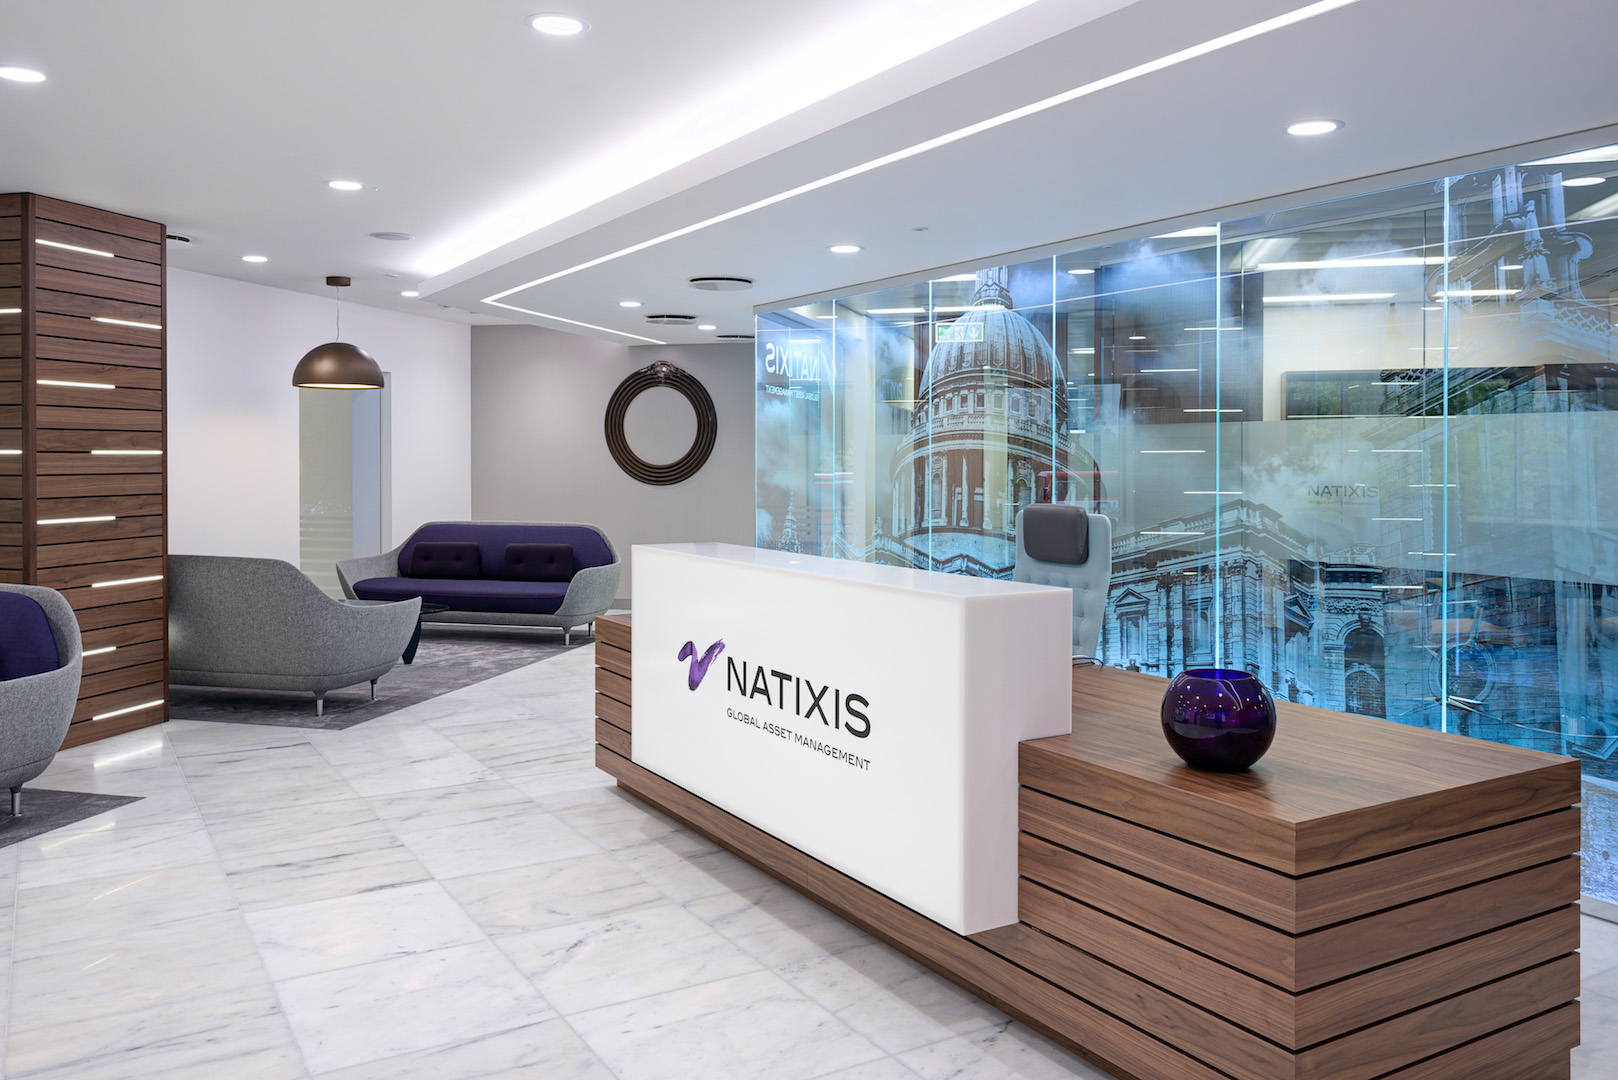 Natixis Office Reception Design Image